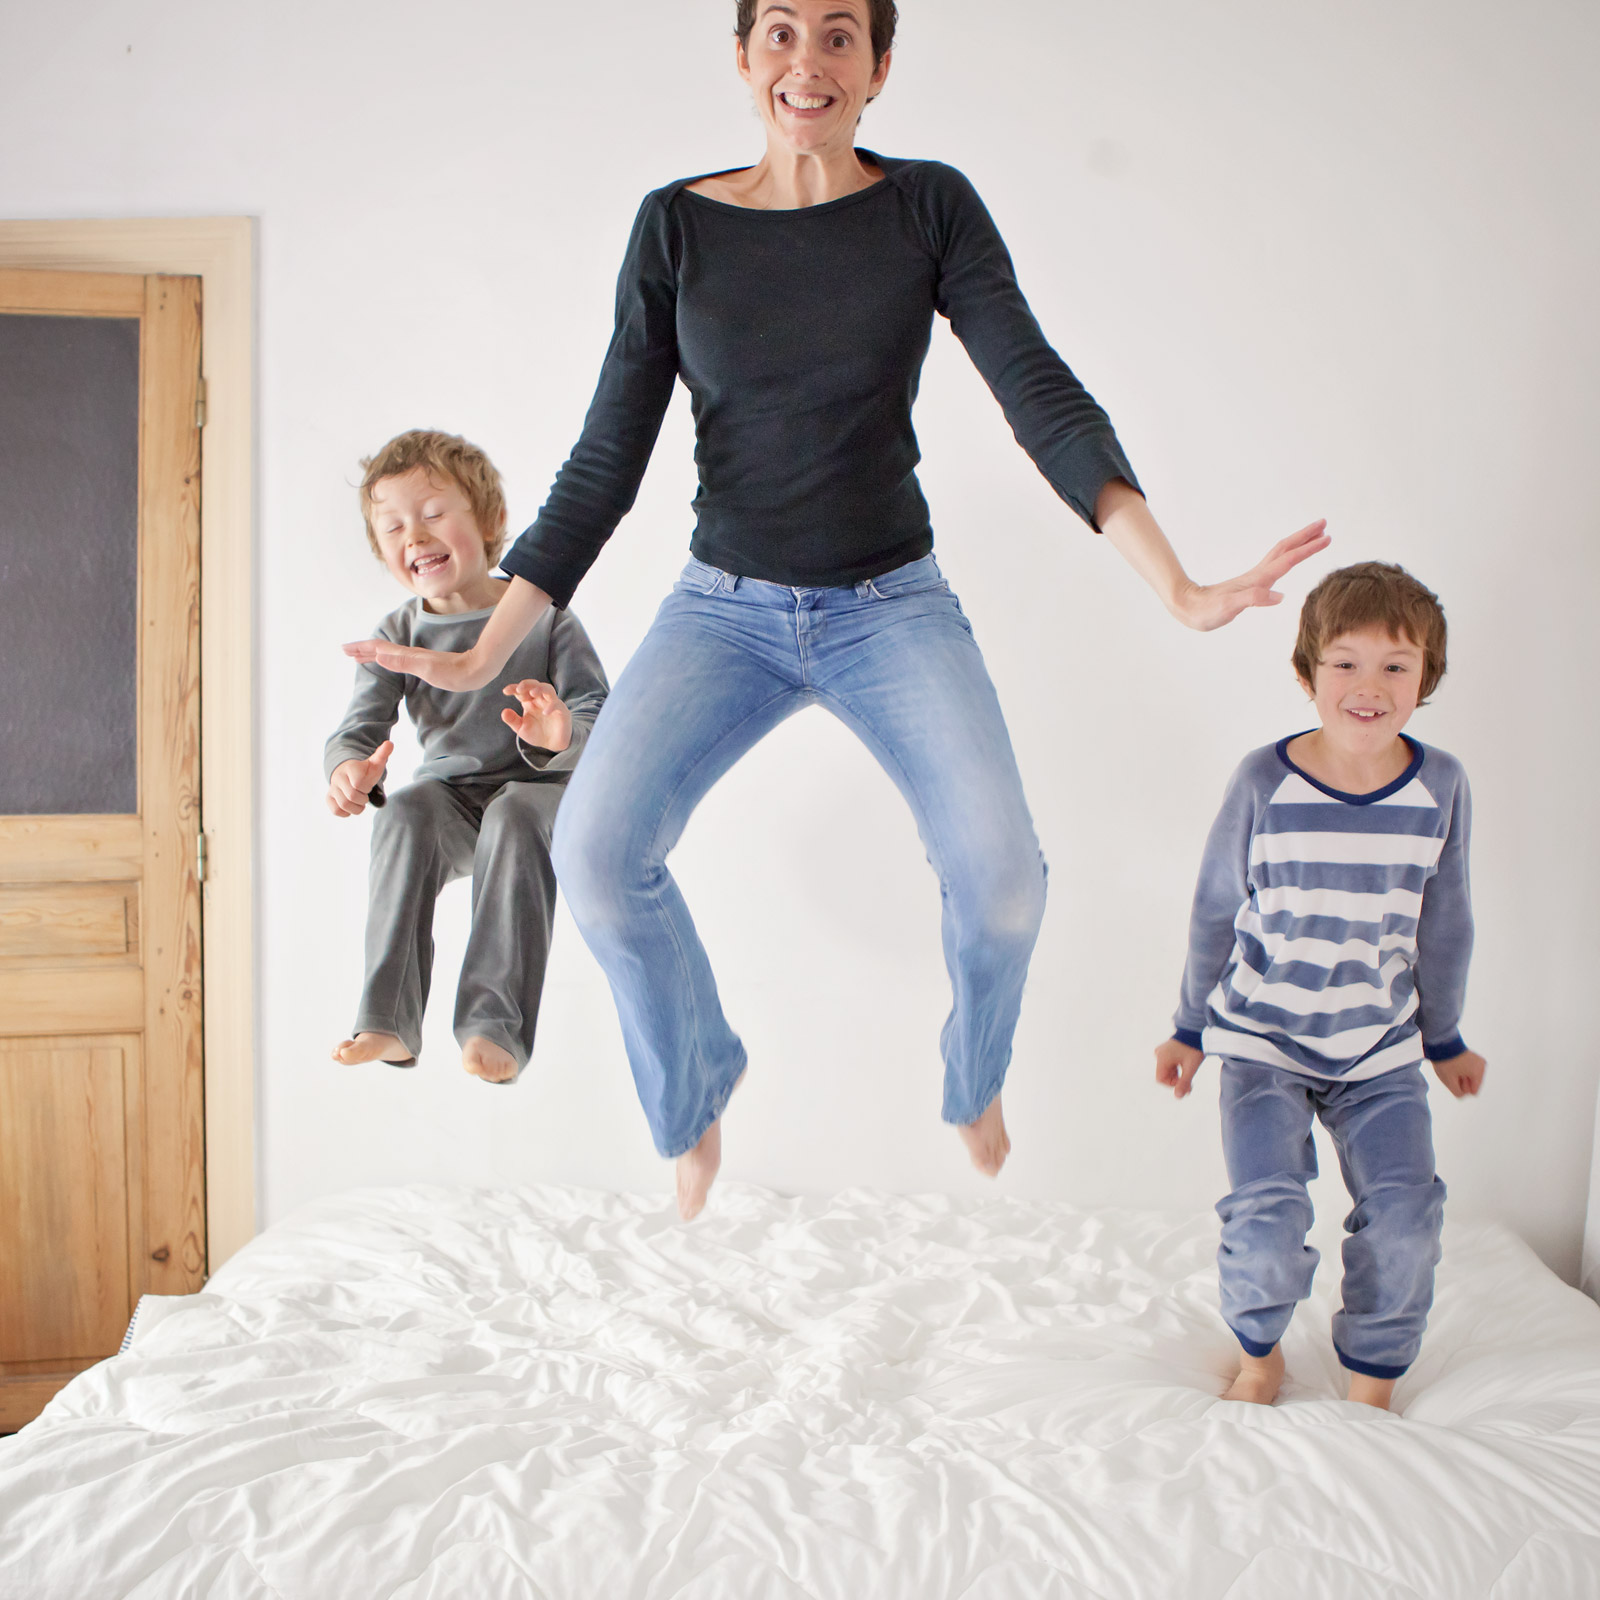 And one of my favorite tricks to get big smiles and belly laughs during a kids photo shoot is definitely the jumping-on-the-bed one.